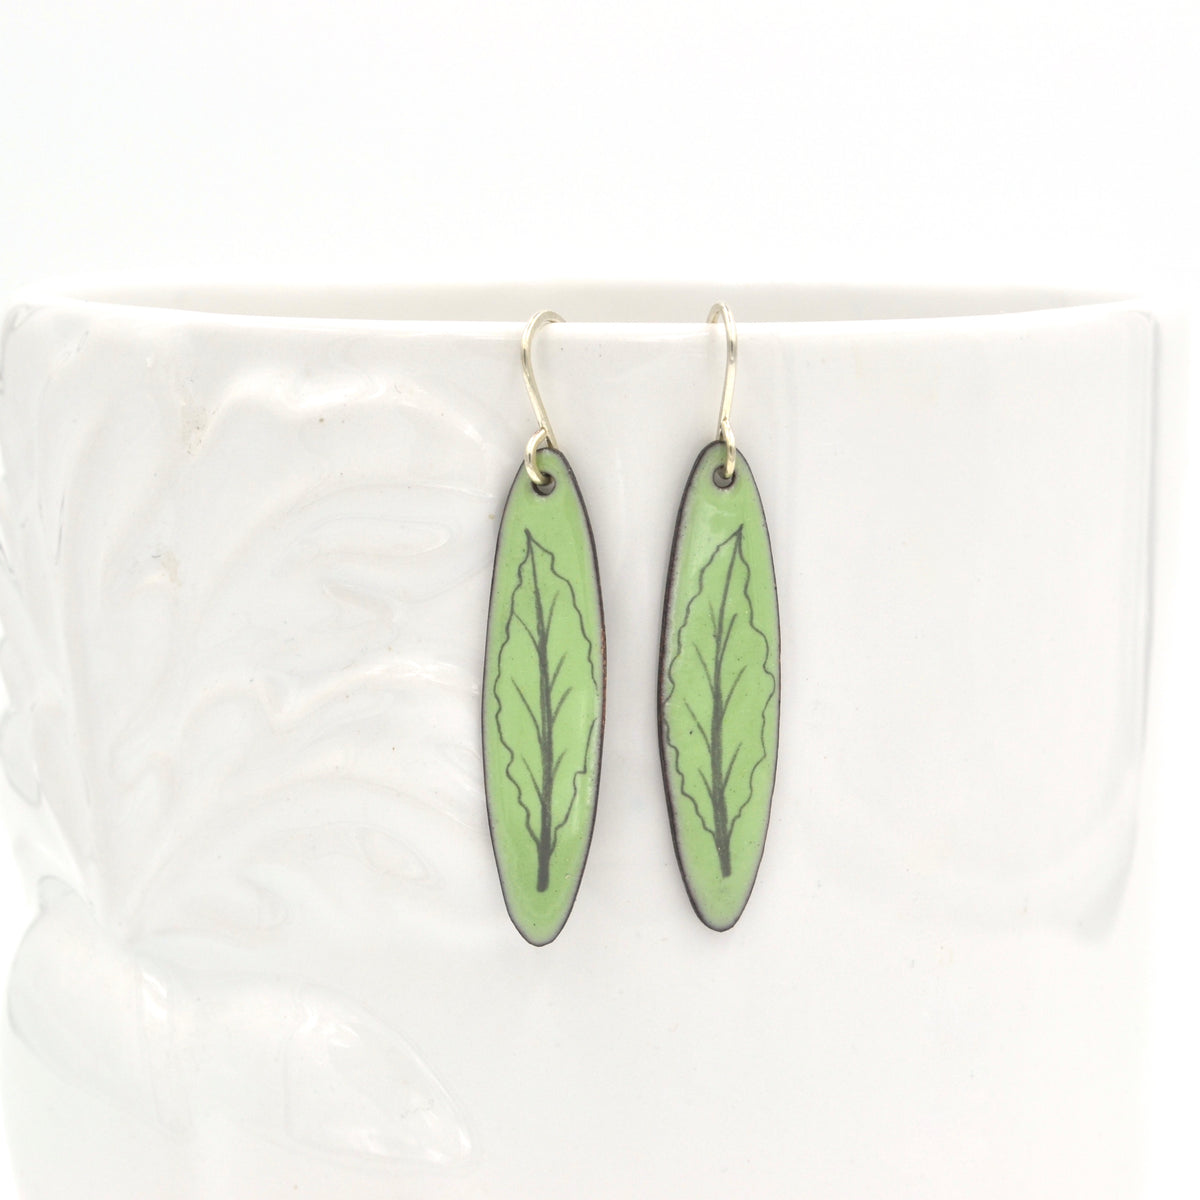 Green Enamel Kale 'Doodle' Earrings